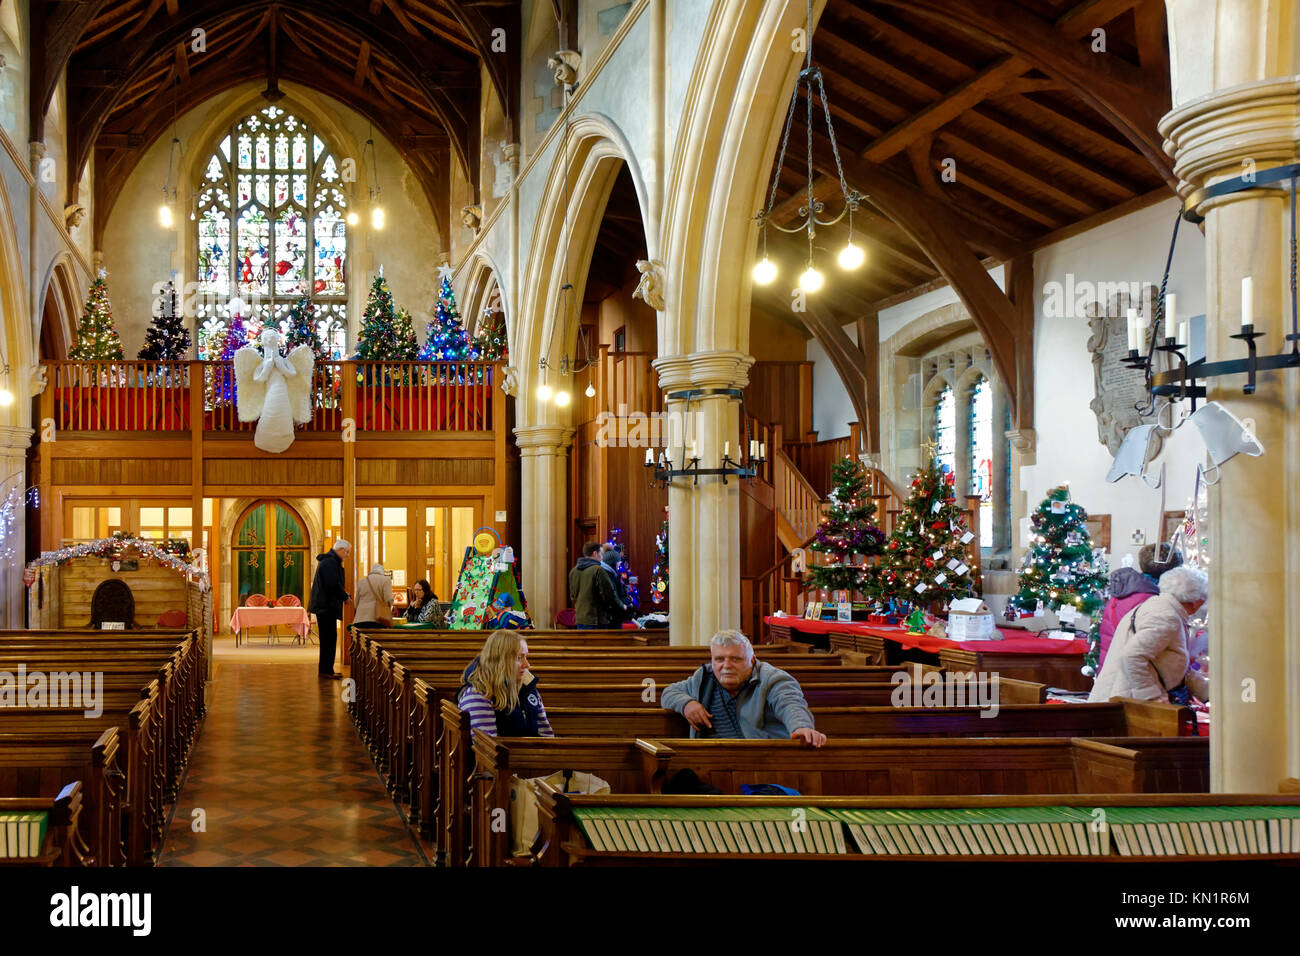 Minster Church, Warminster, Wiltshire, UK. 9th December 2017. The Minster Church of St Deny's in Church Street, - Stock Image